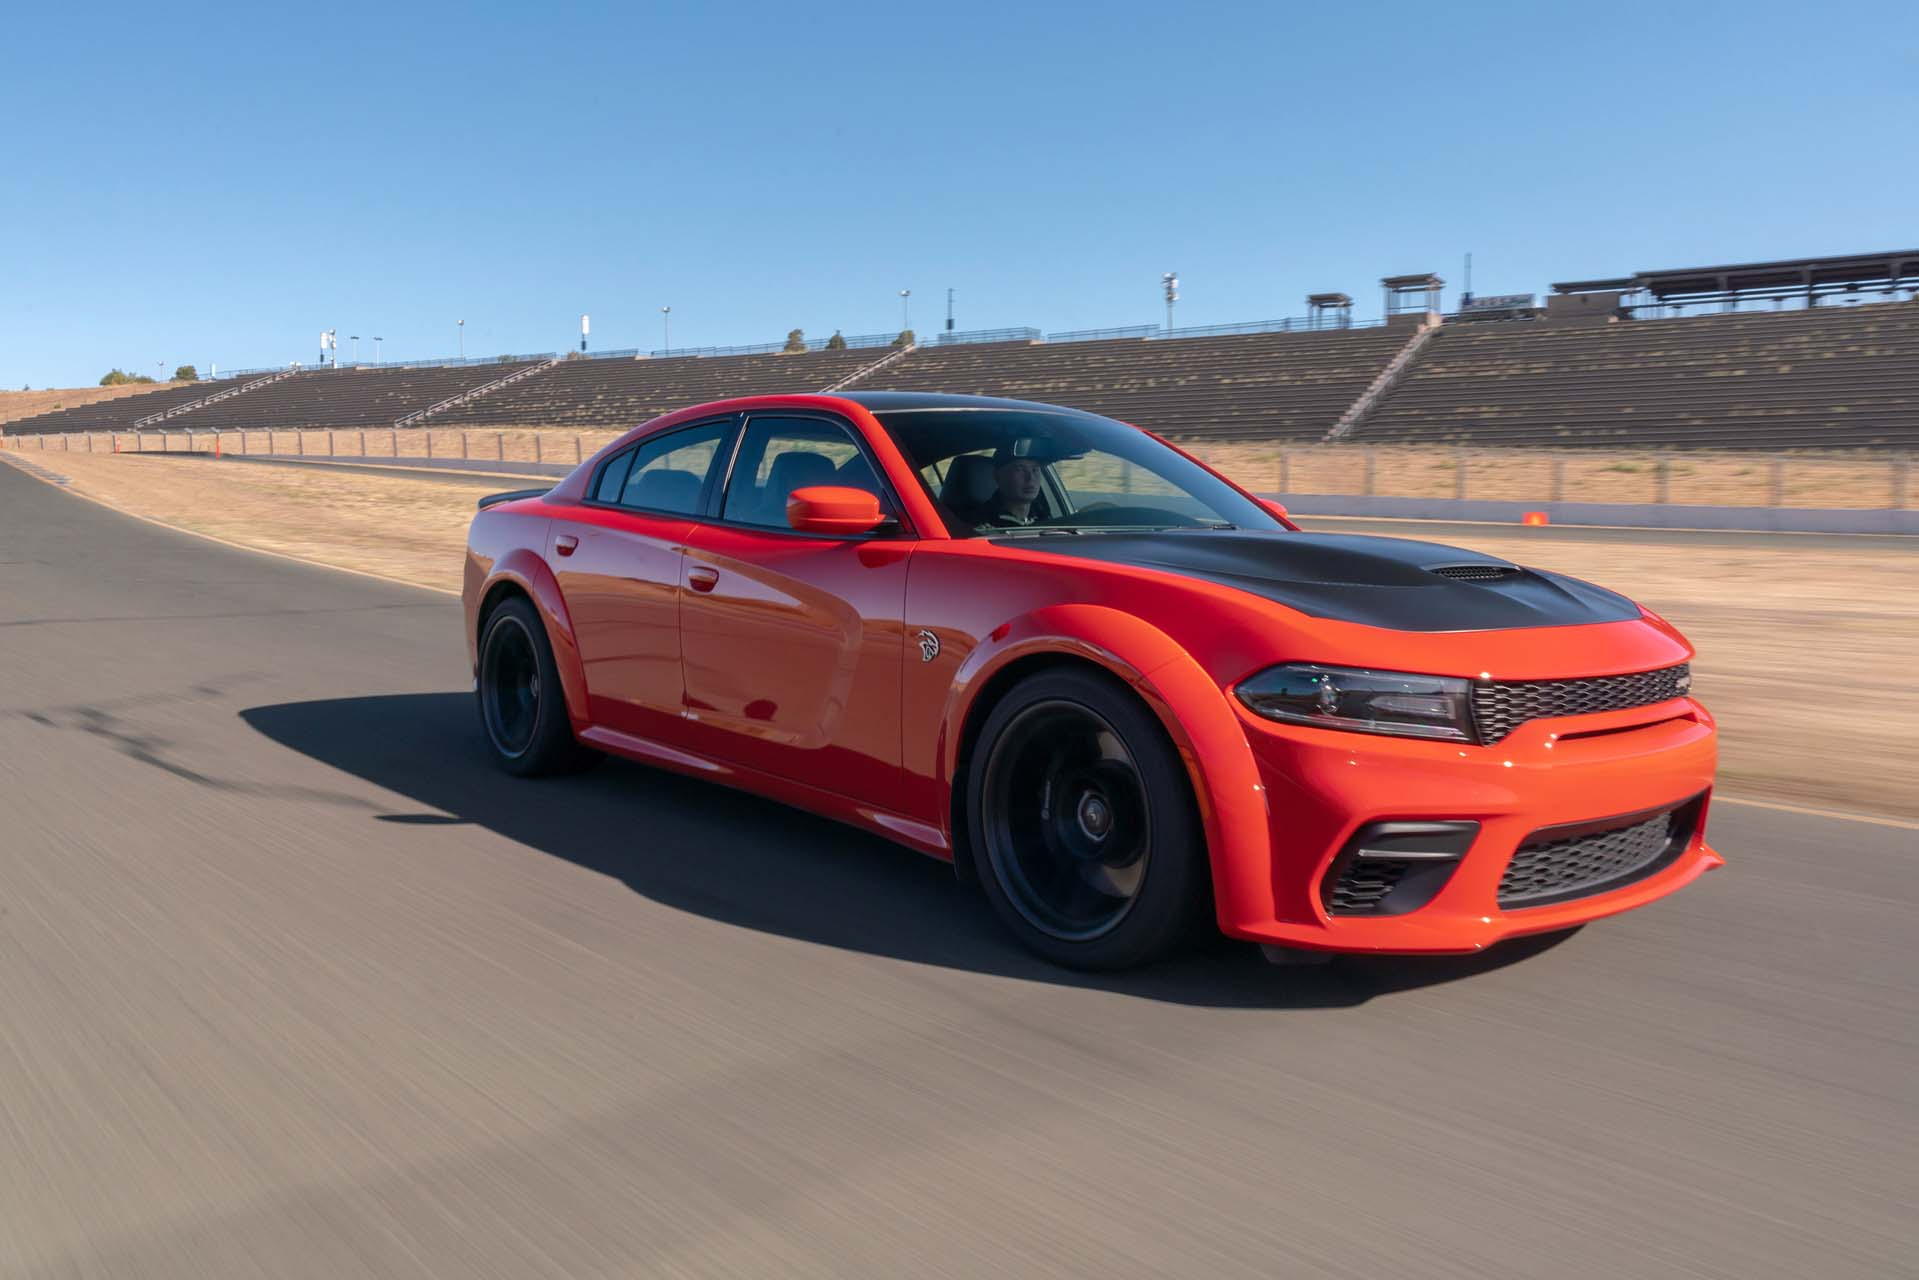 2020 Dodge Charger SRT Hellcat Widebody (Color: TorRed) Front Three-Quarter Wallpapers (2)